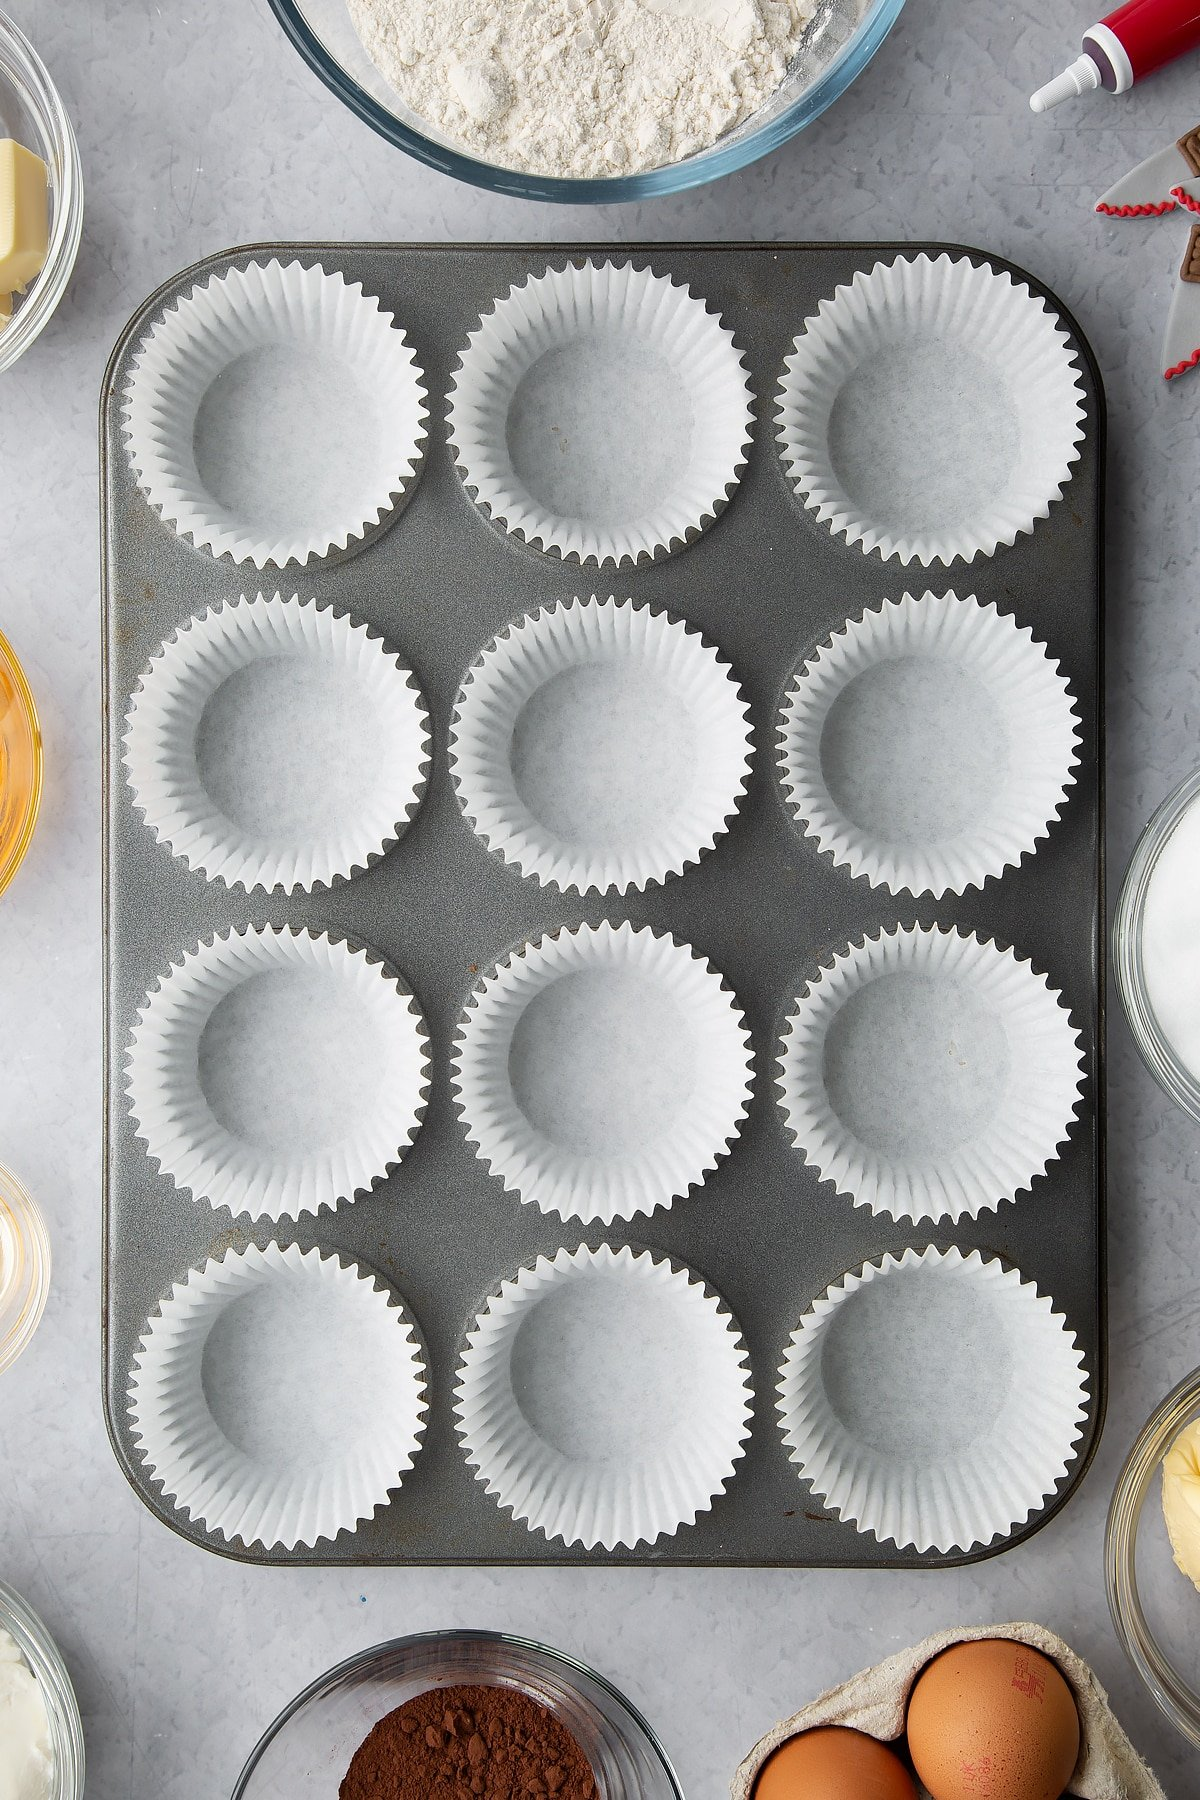 A muffin tray lined with cupcake cases. Ingredients to make red velvet Halloween cupcakes surround the tin.